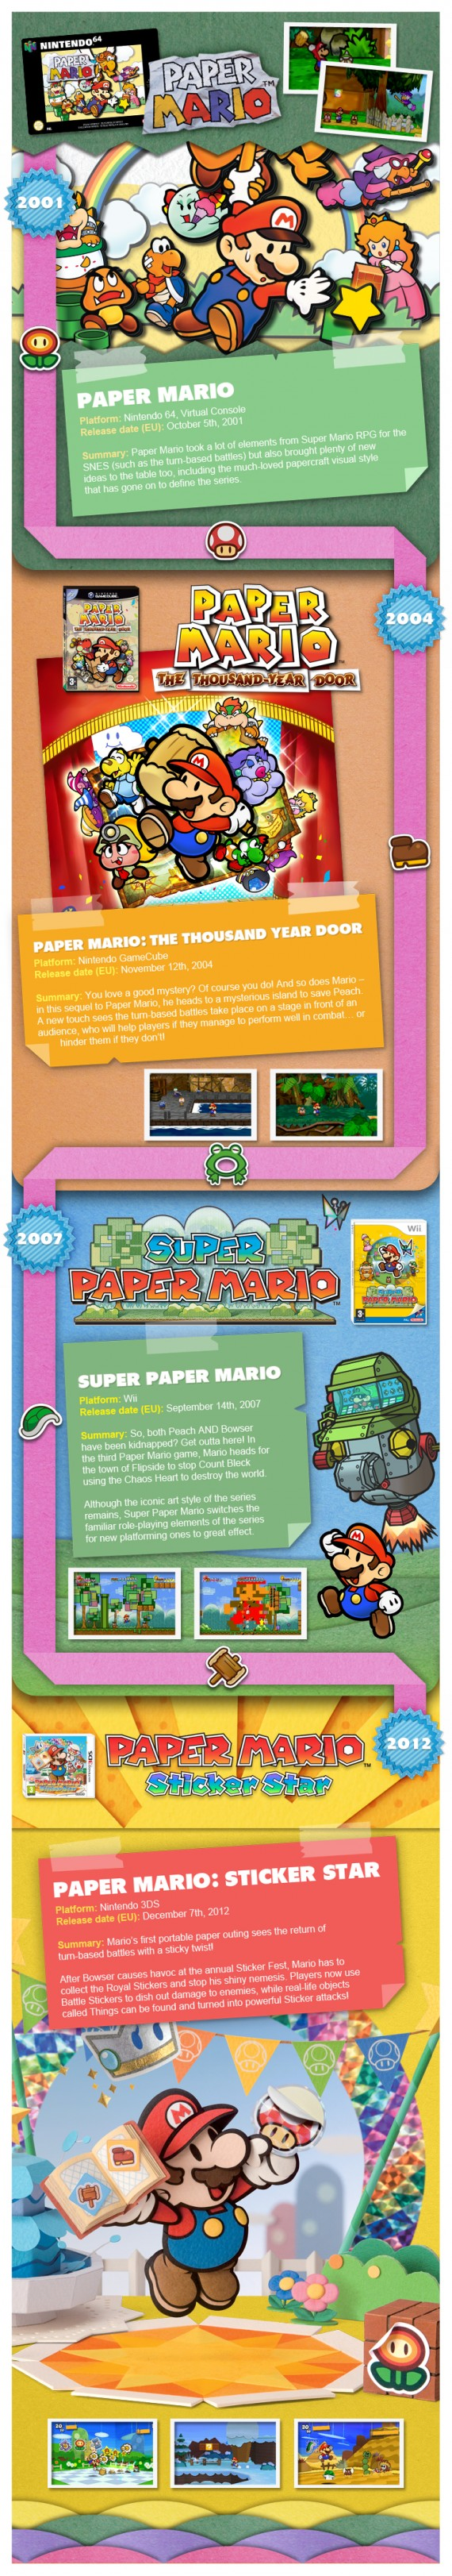 Paper Mario Timeline-Infographic